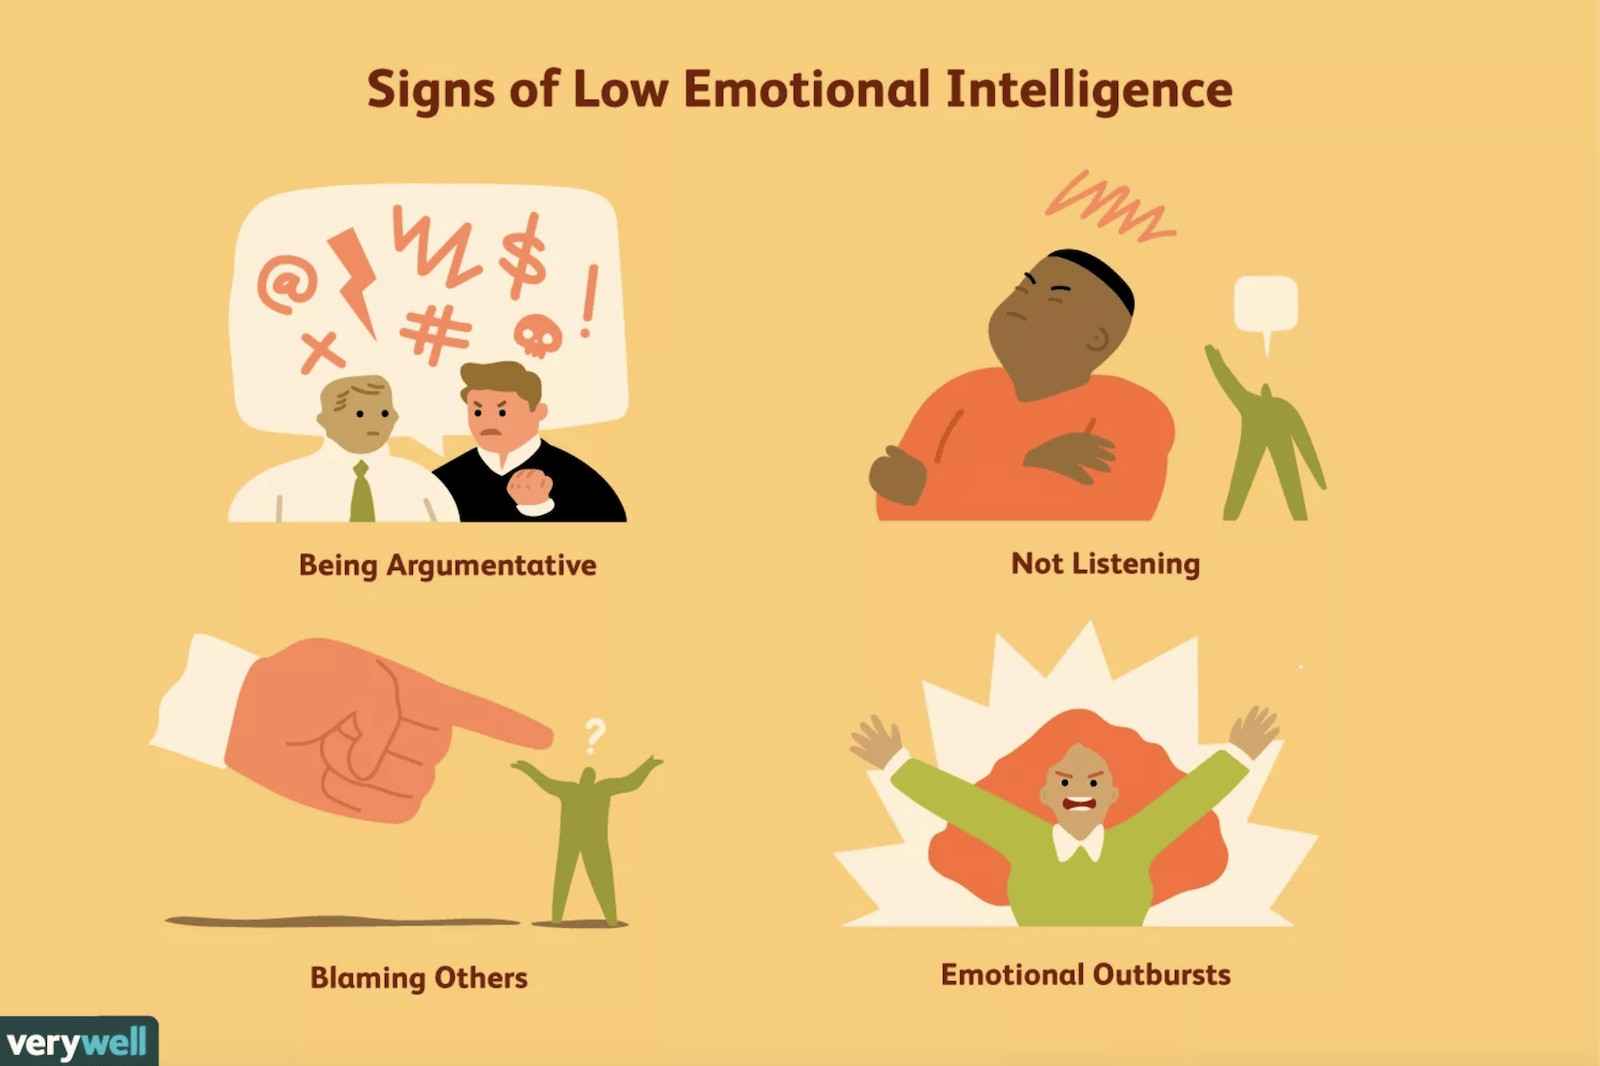 low emotional intelligence signs